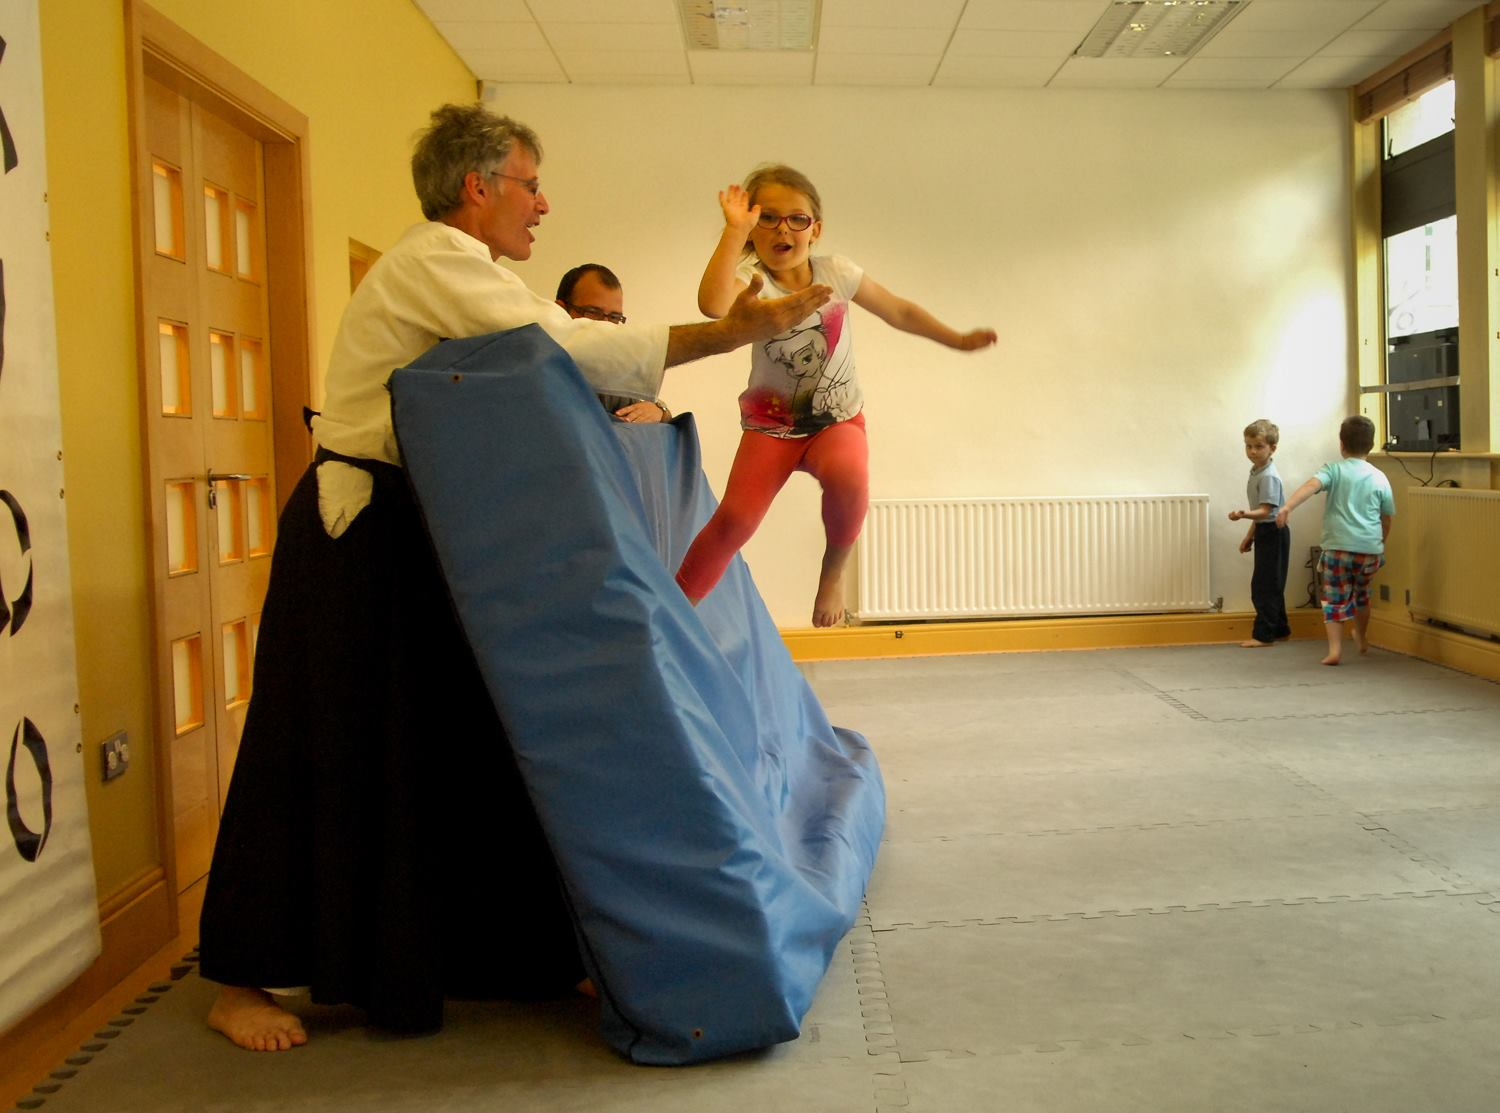 Kid's class at the Irish Aikido Association, Cuffe Street, Dublin.